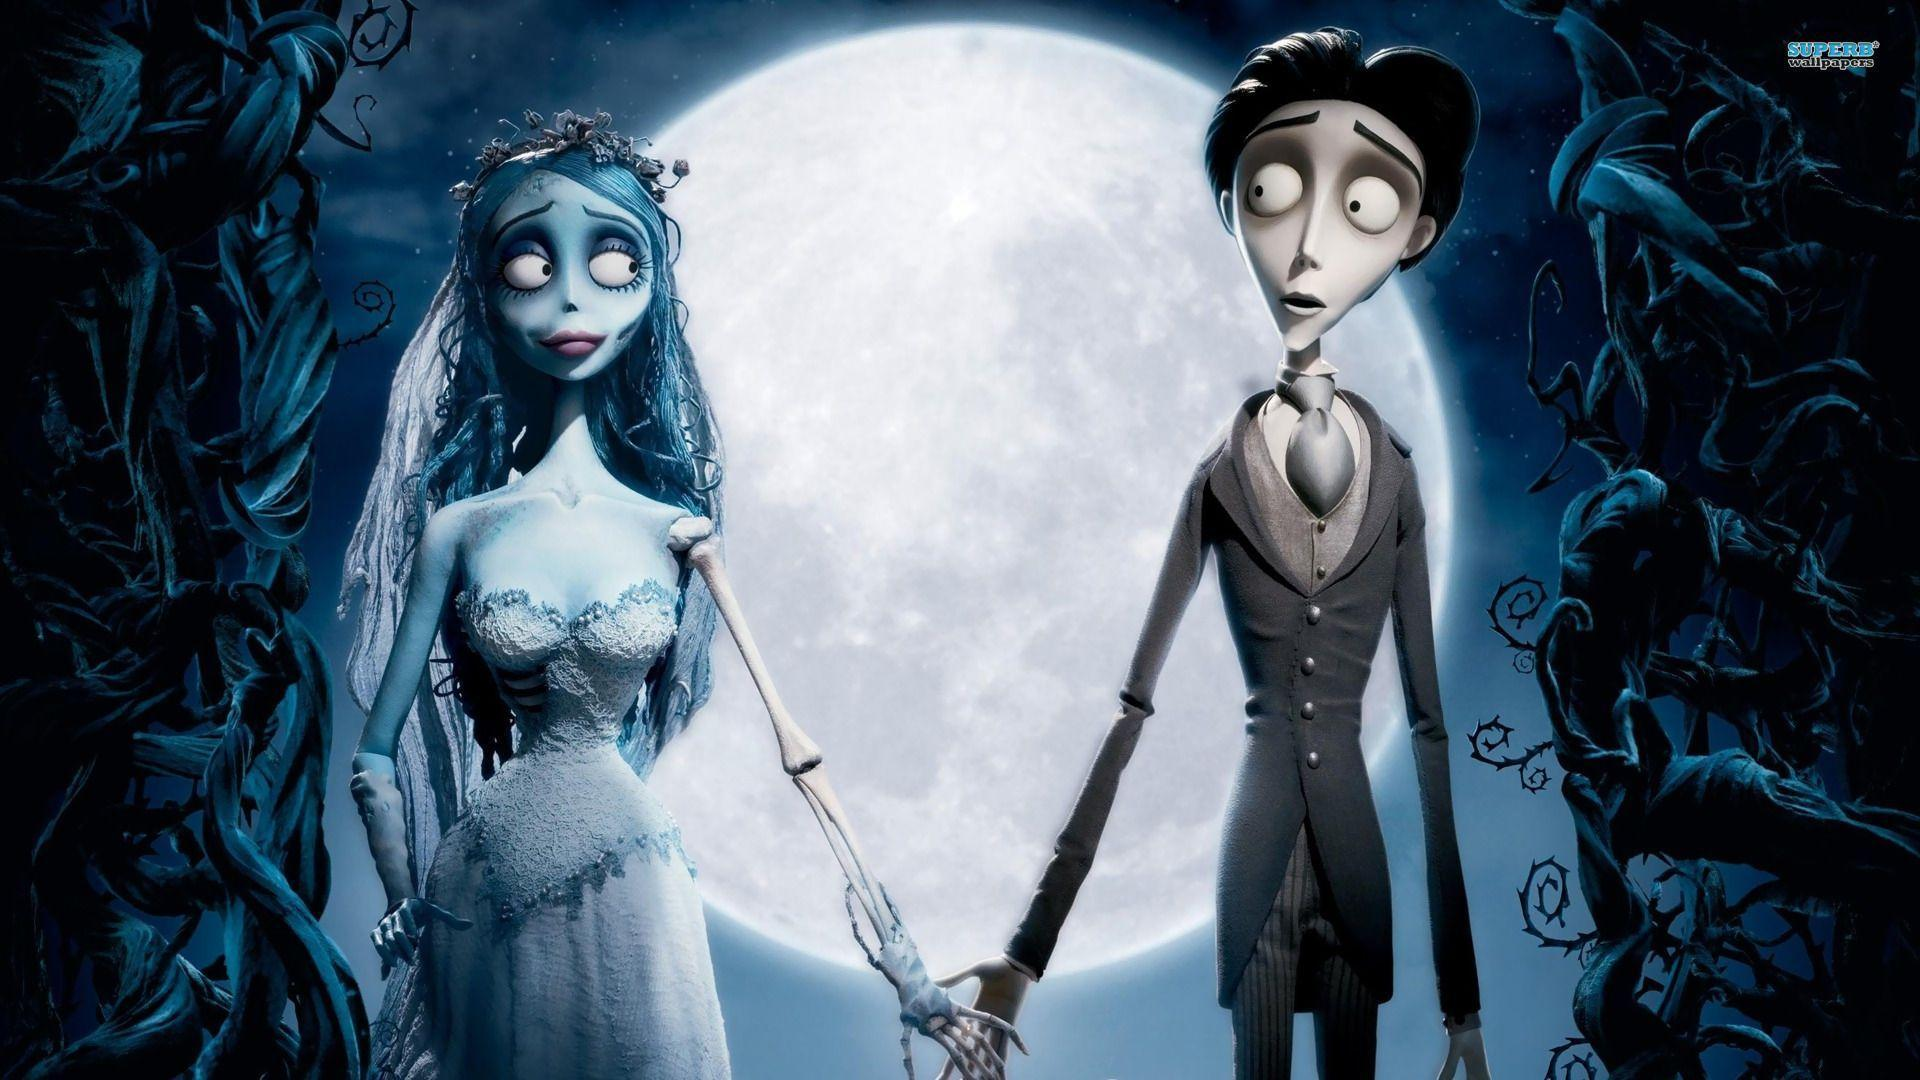 summary of corpse bride